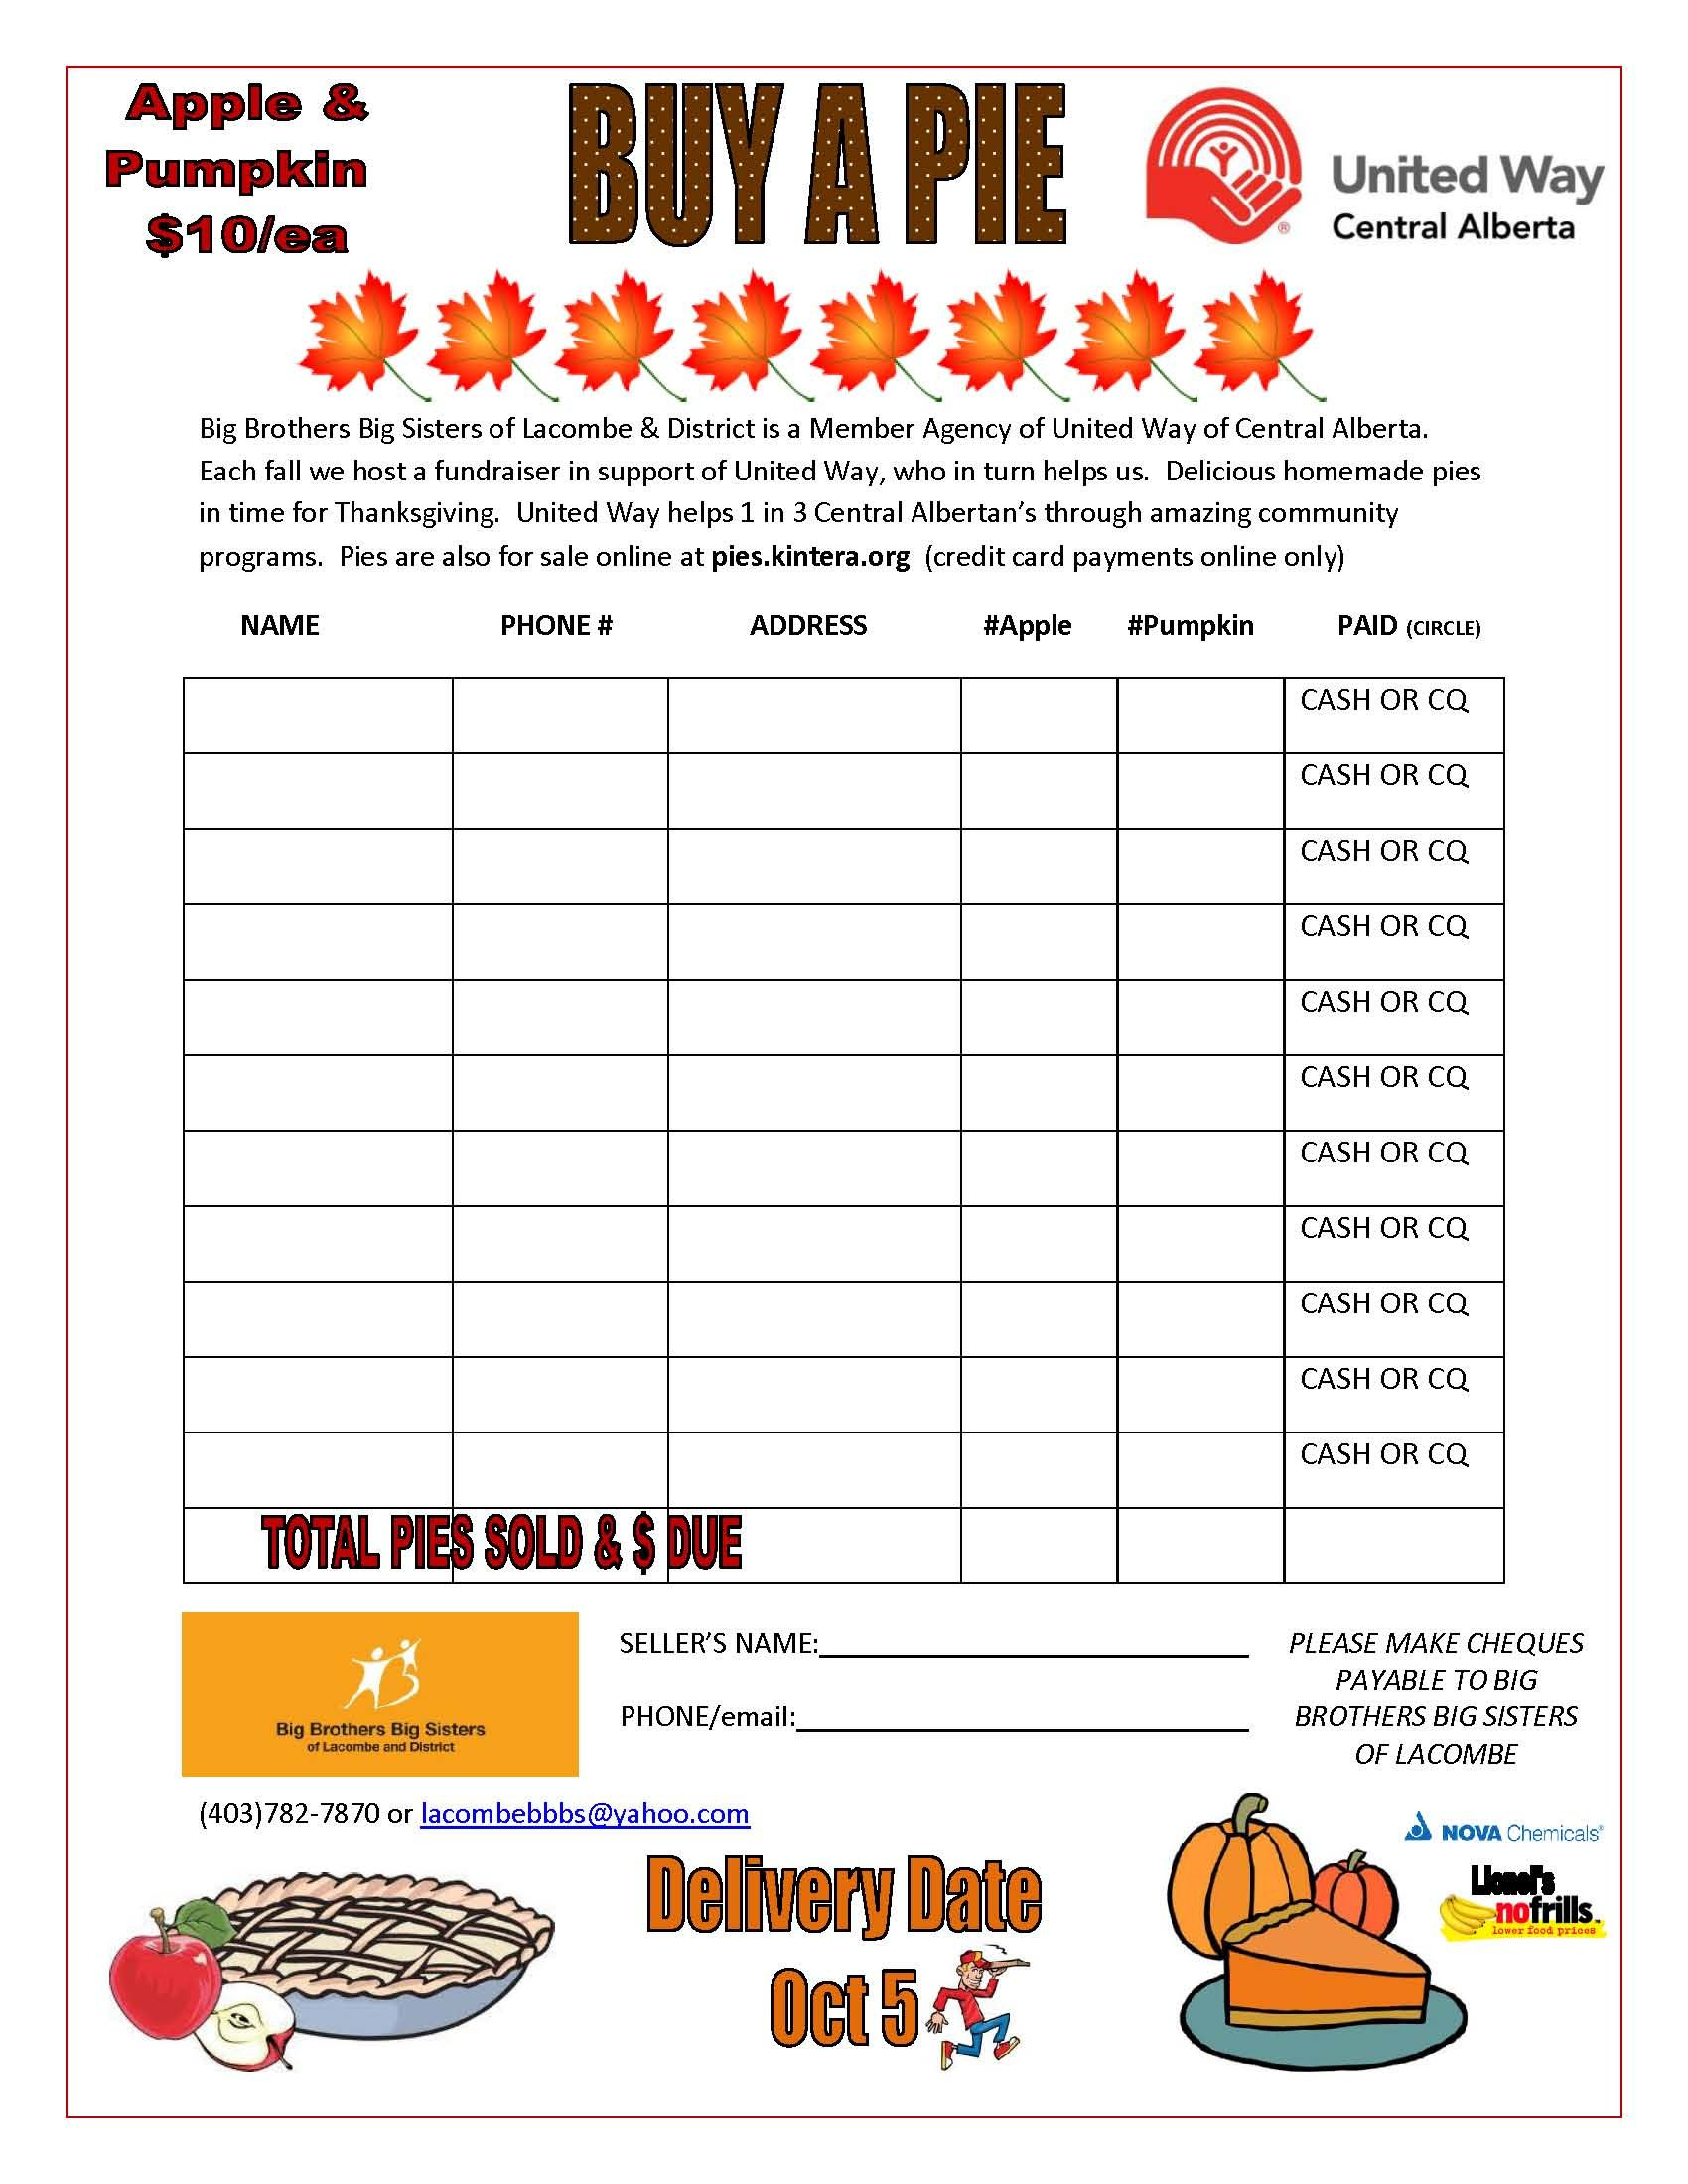 Pie Fundraiser Order Form  United Way Days  Big Brothers Big